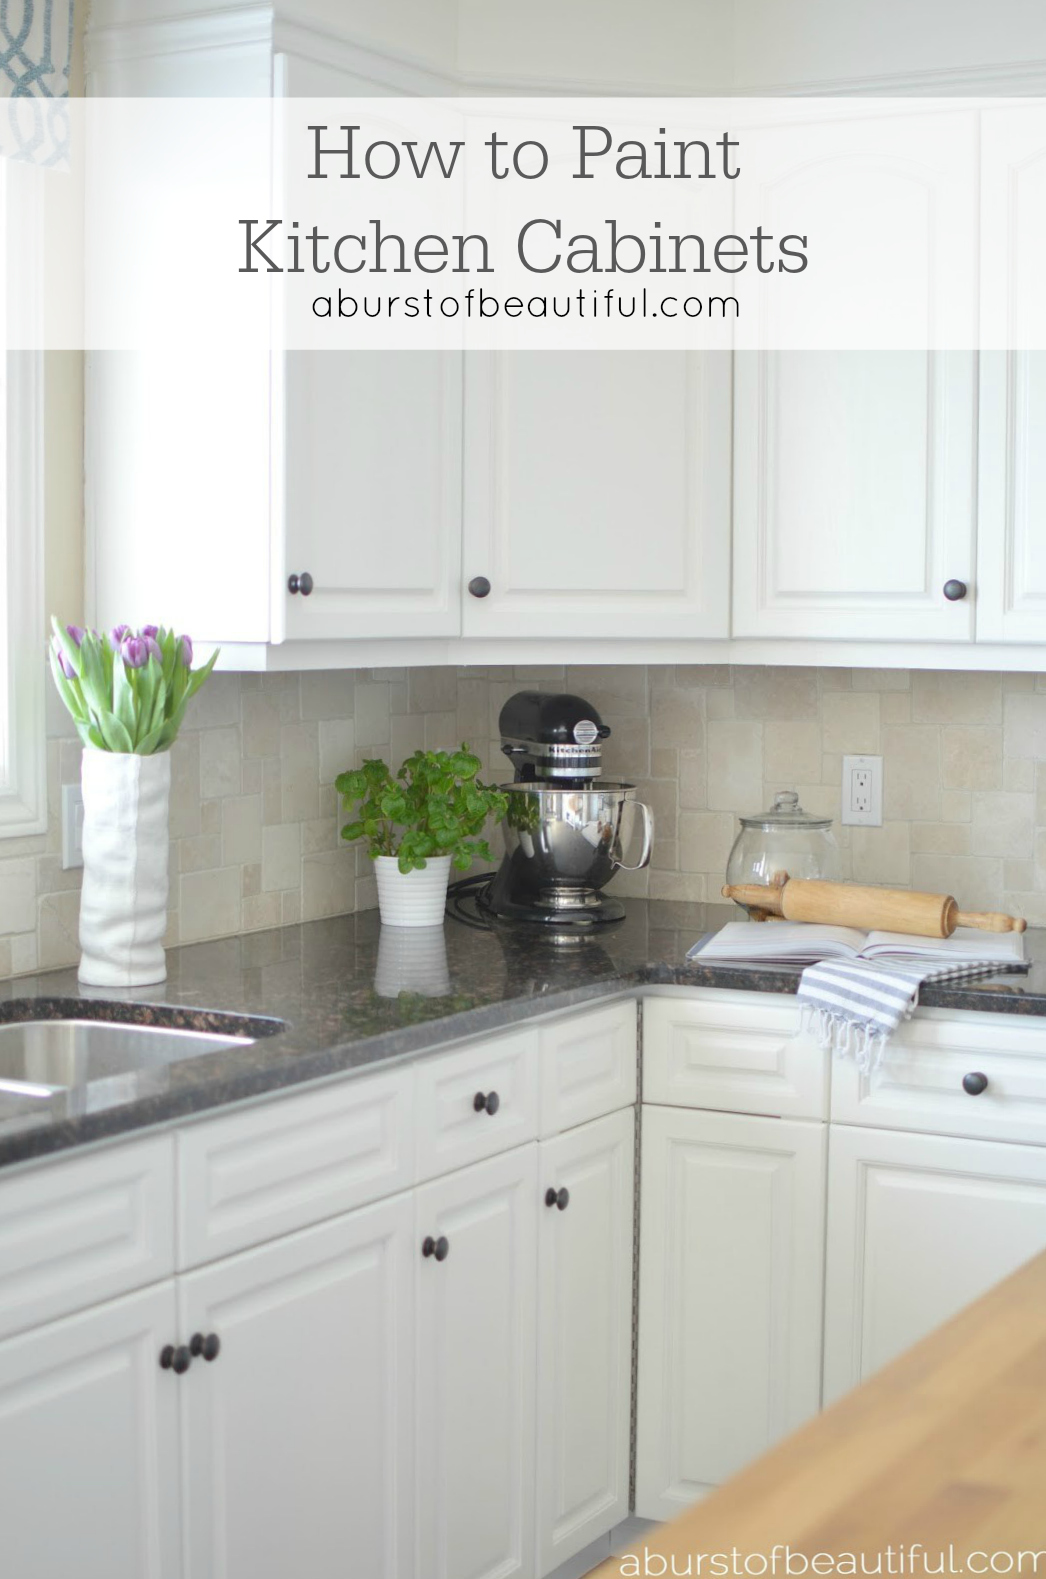 How to paint kitchen cabinets a burst of beautiful - How to glaze kitchen cabinets that are painted ...